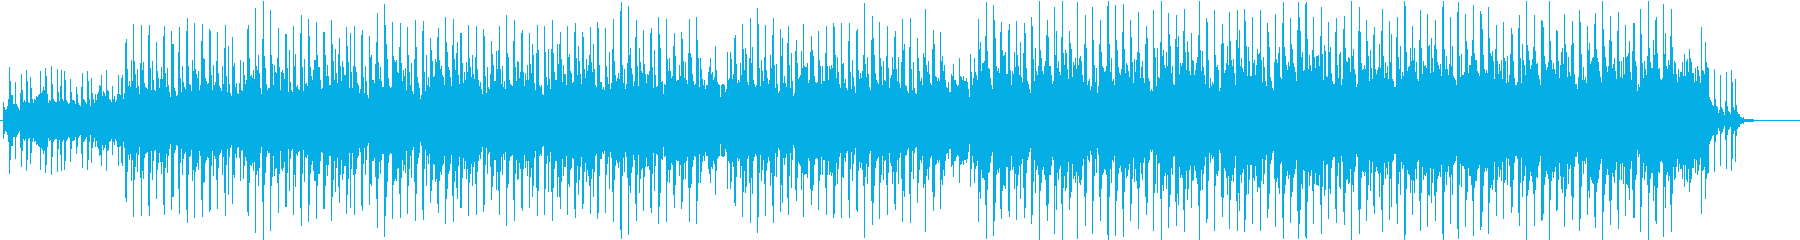 Inspiring Energetic (Middle) - Promotional 30's reproduced waveform